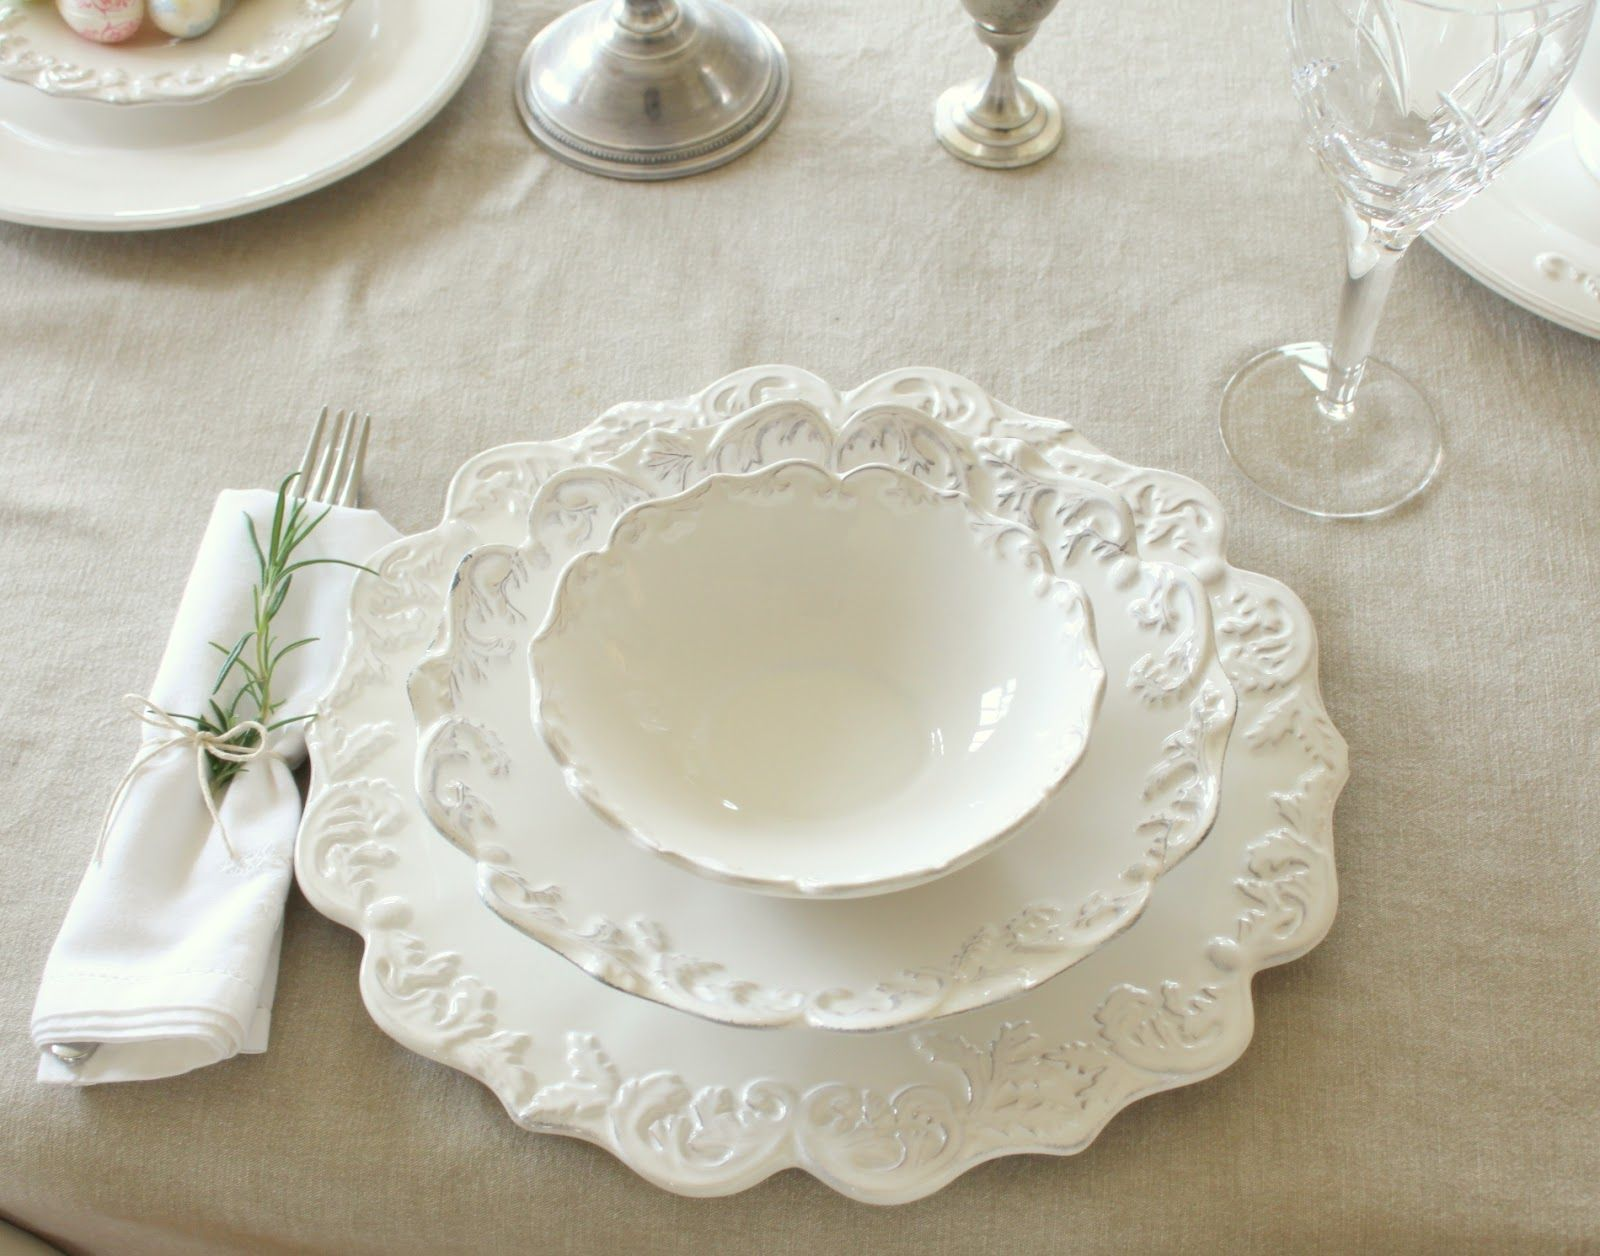 french country dinnerware | We set up a little drinks table to the side which looked cute . & french country dinnerware | We set up a little drinks table to the ...